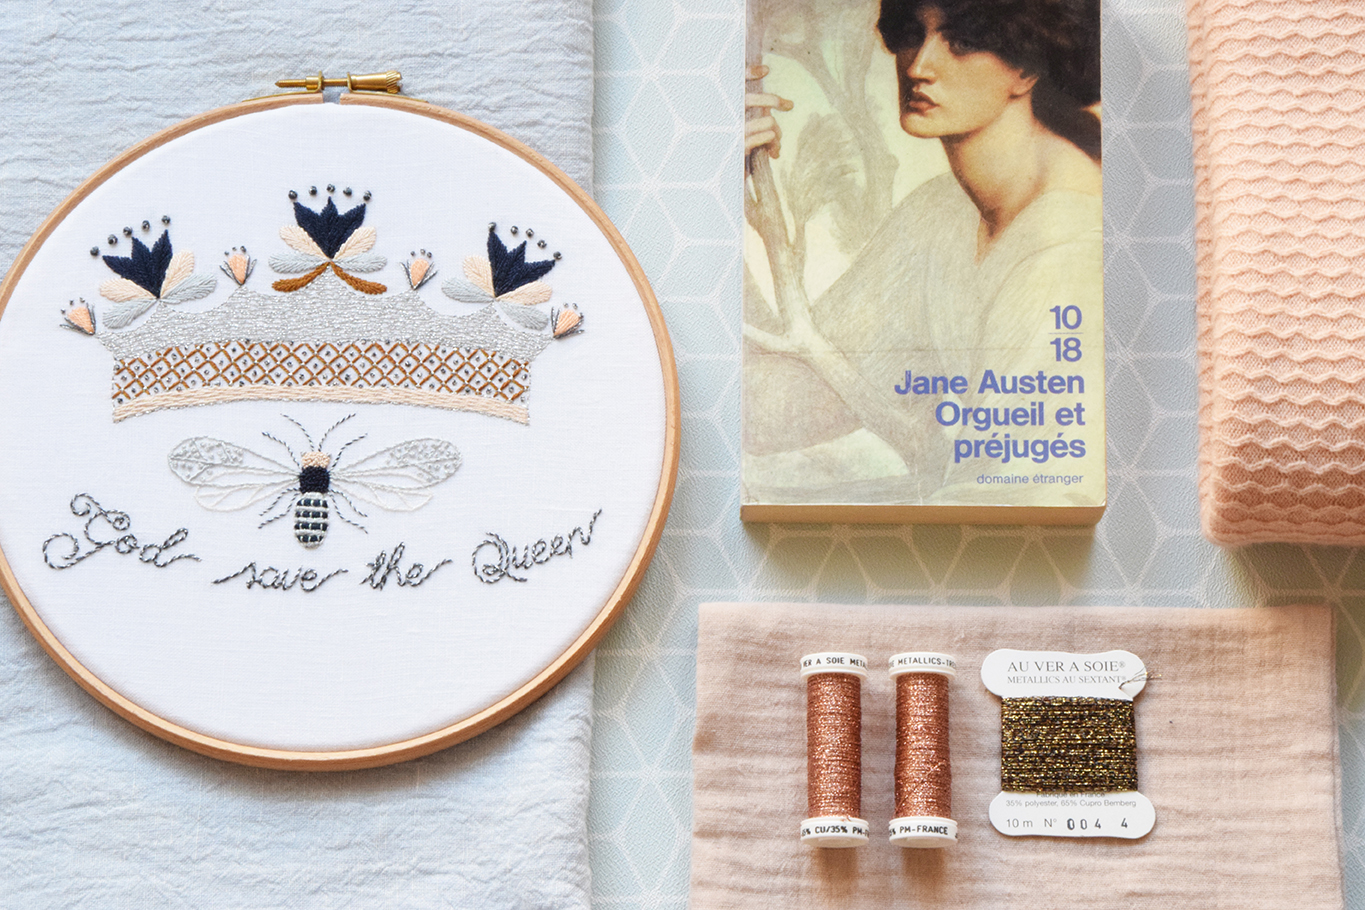 God save the queen, atelier de broderie avec Martine Biessy